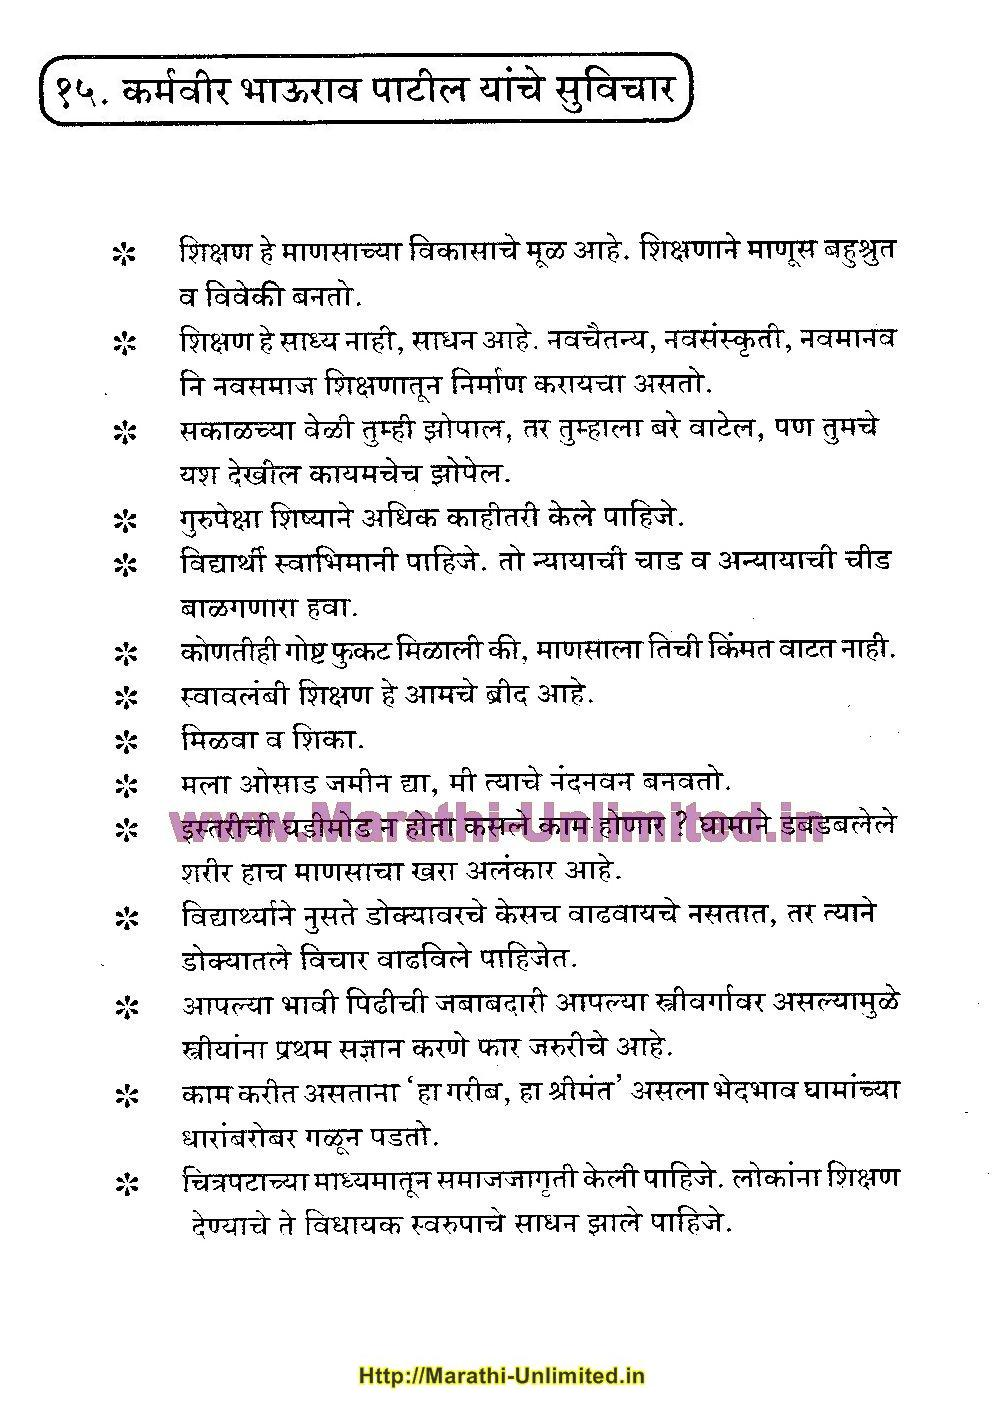 Essay on karmaveer bhaurao patil